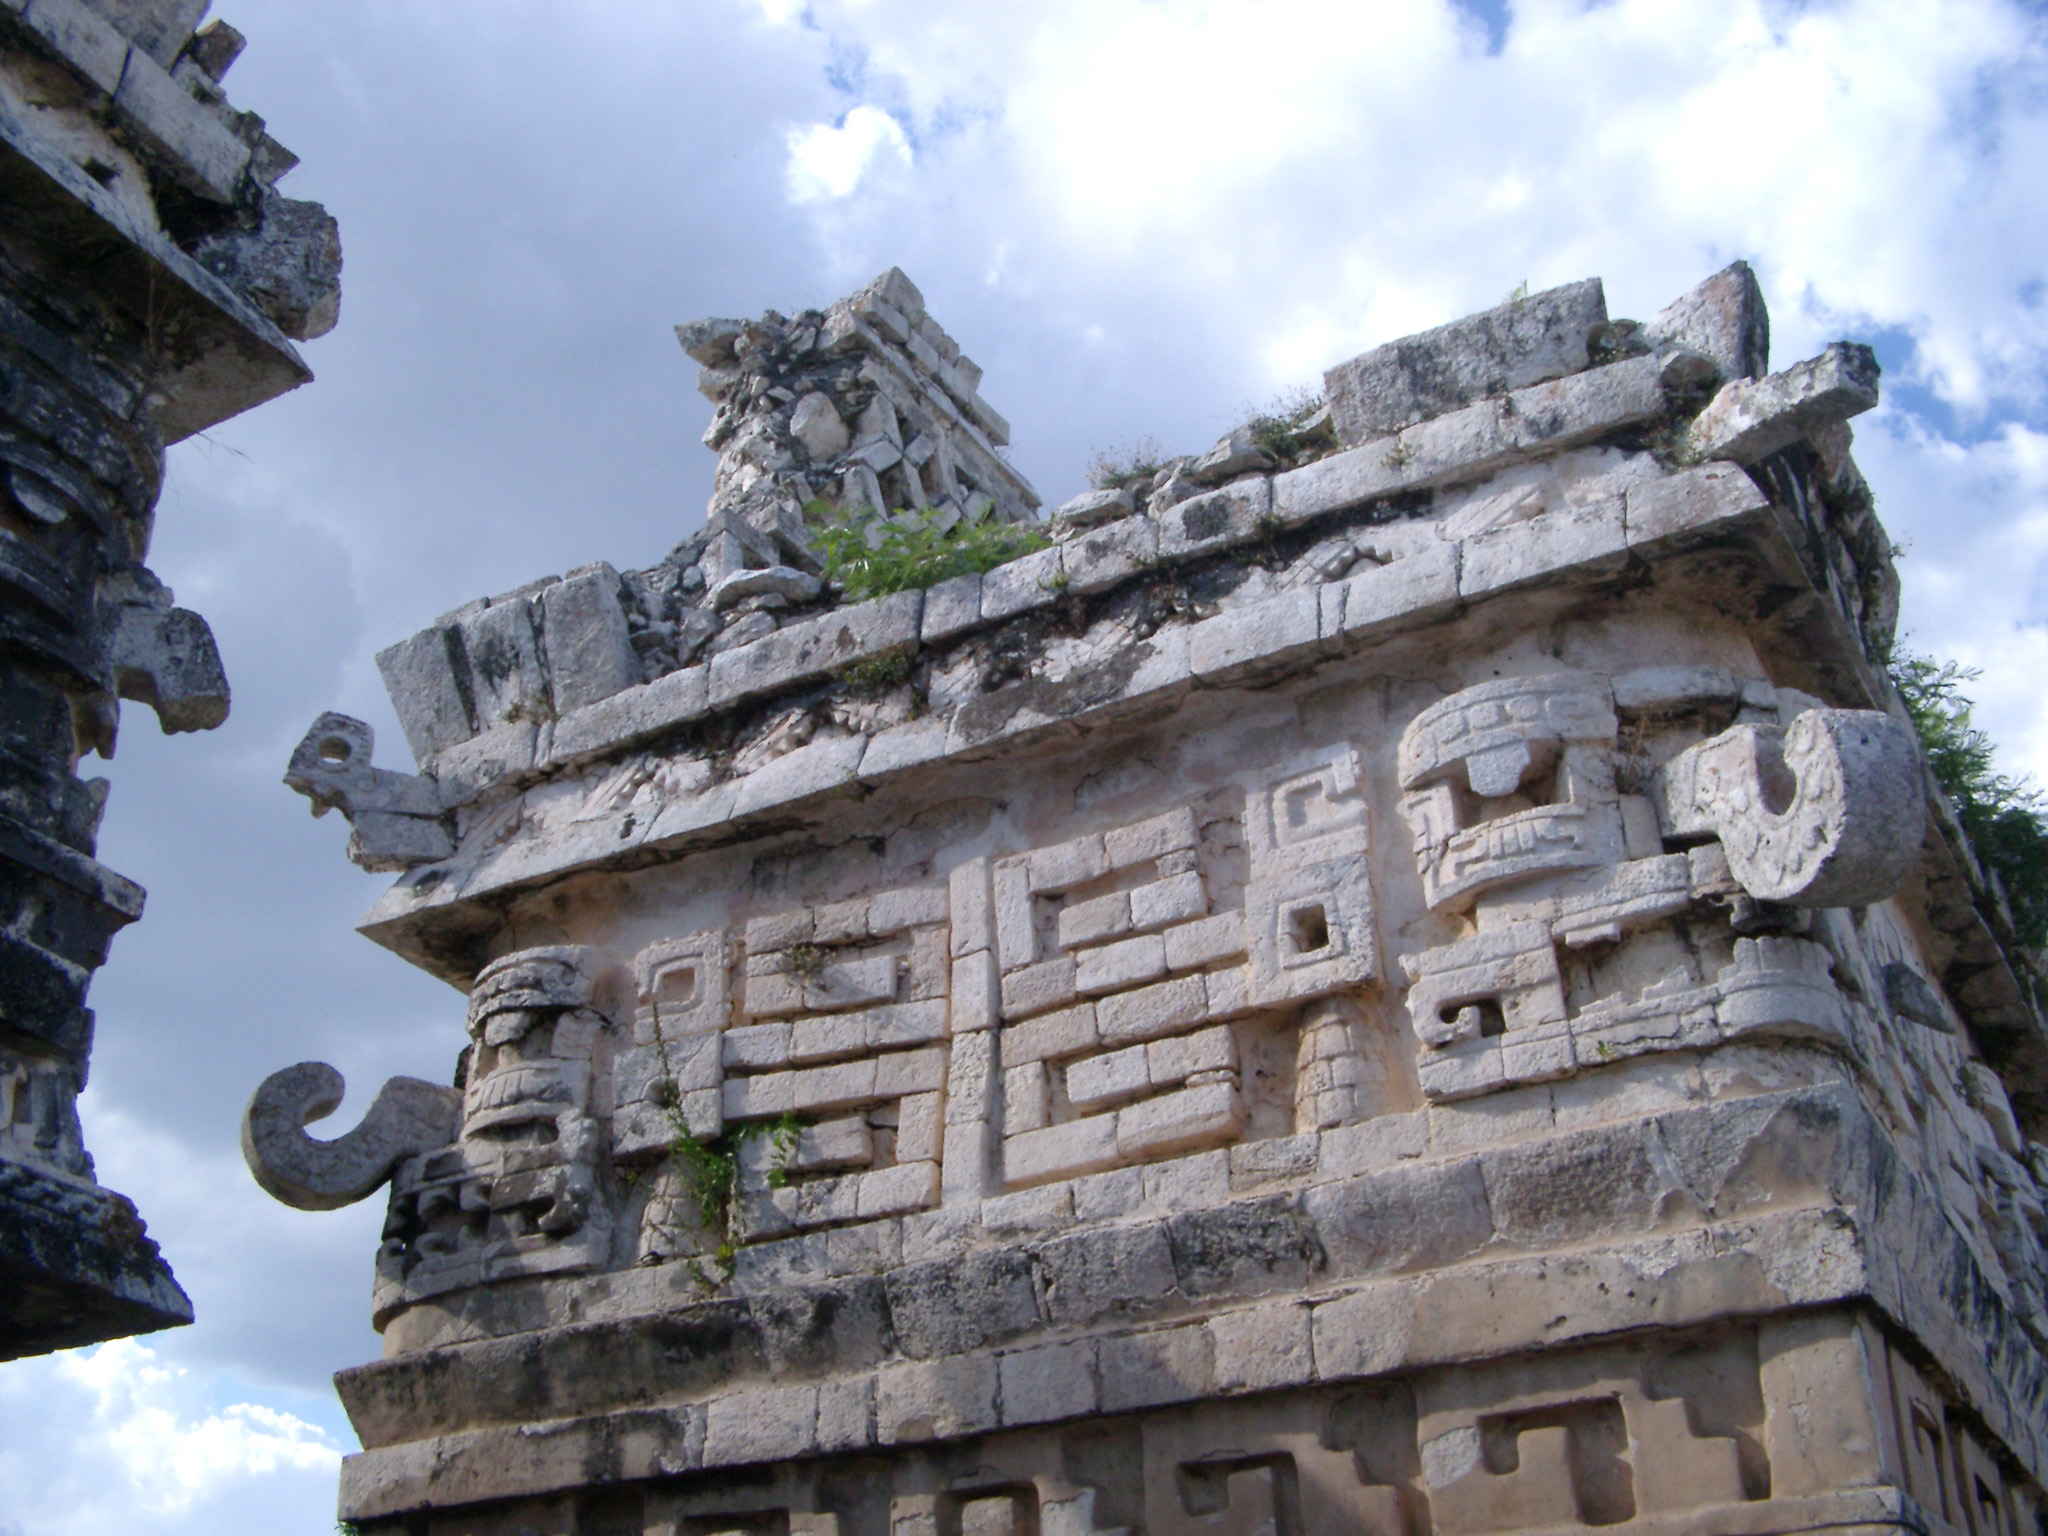 Ornate stone carvings with tribal patterns and hooked corner stones at Chitzen Itza Mayan ruins, an important archaeological site in the Yucatan Peninsula, Mexico